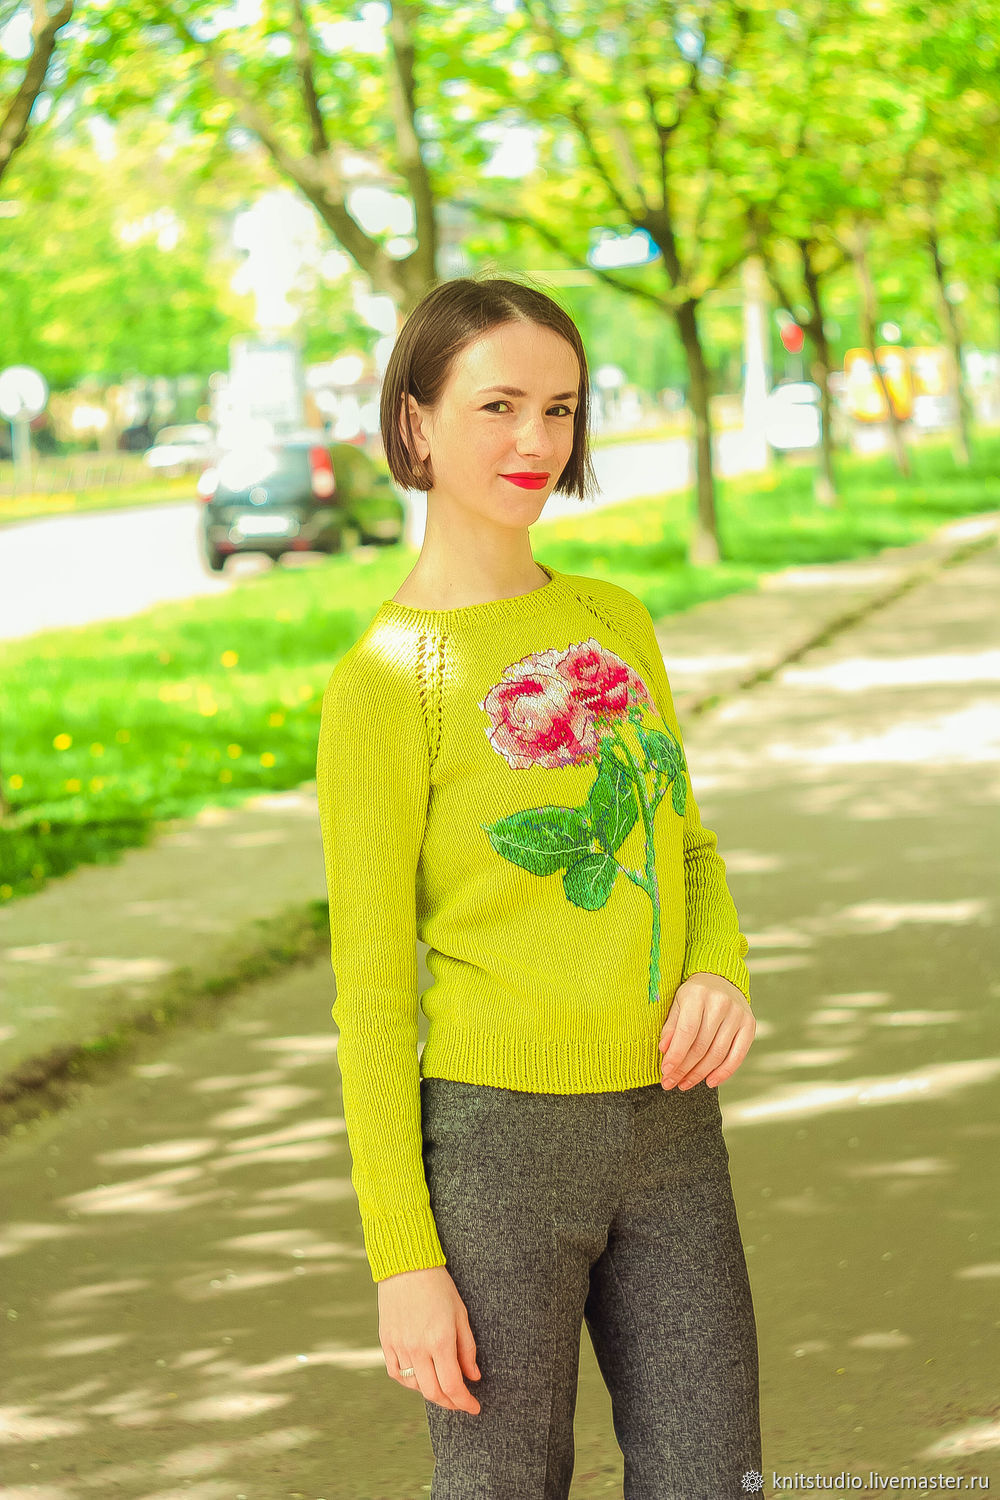 2bca67a4051 Buy Silk cardigan with embroidered roses · Sweater Jackets   Sweaters  handmade. Silk cardigan with embroidered roses.